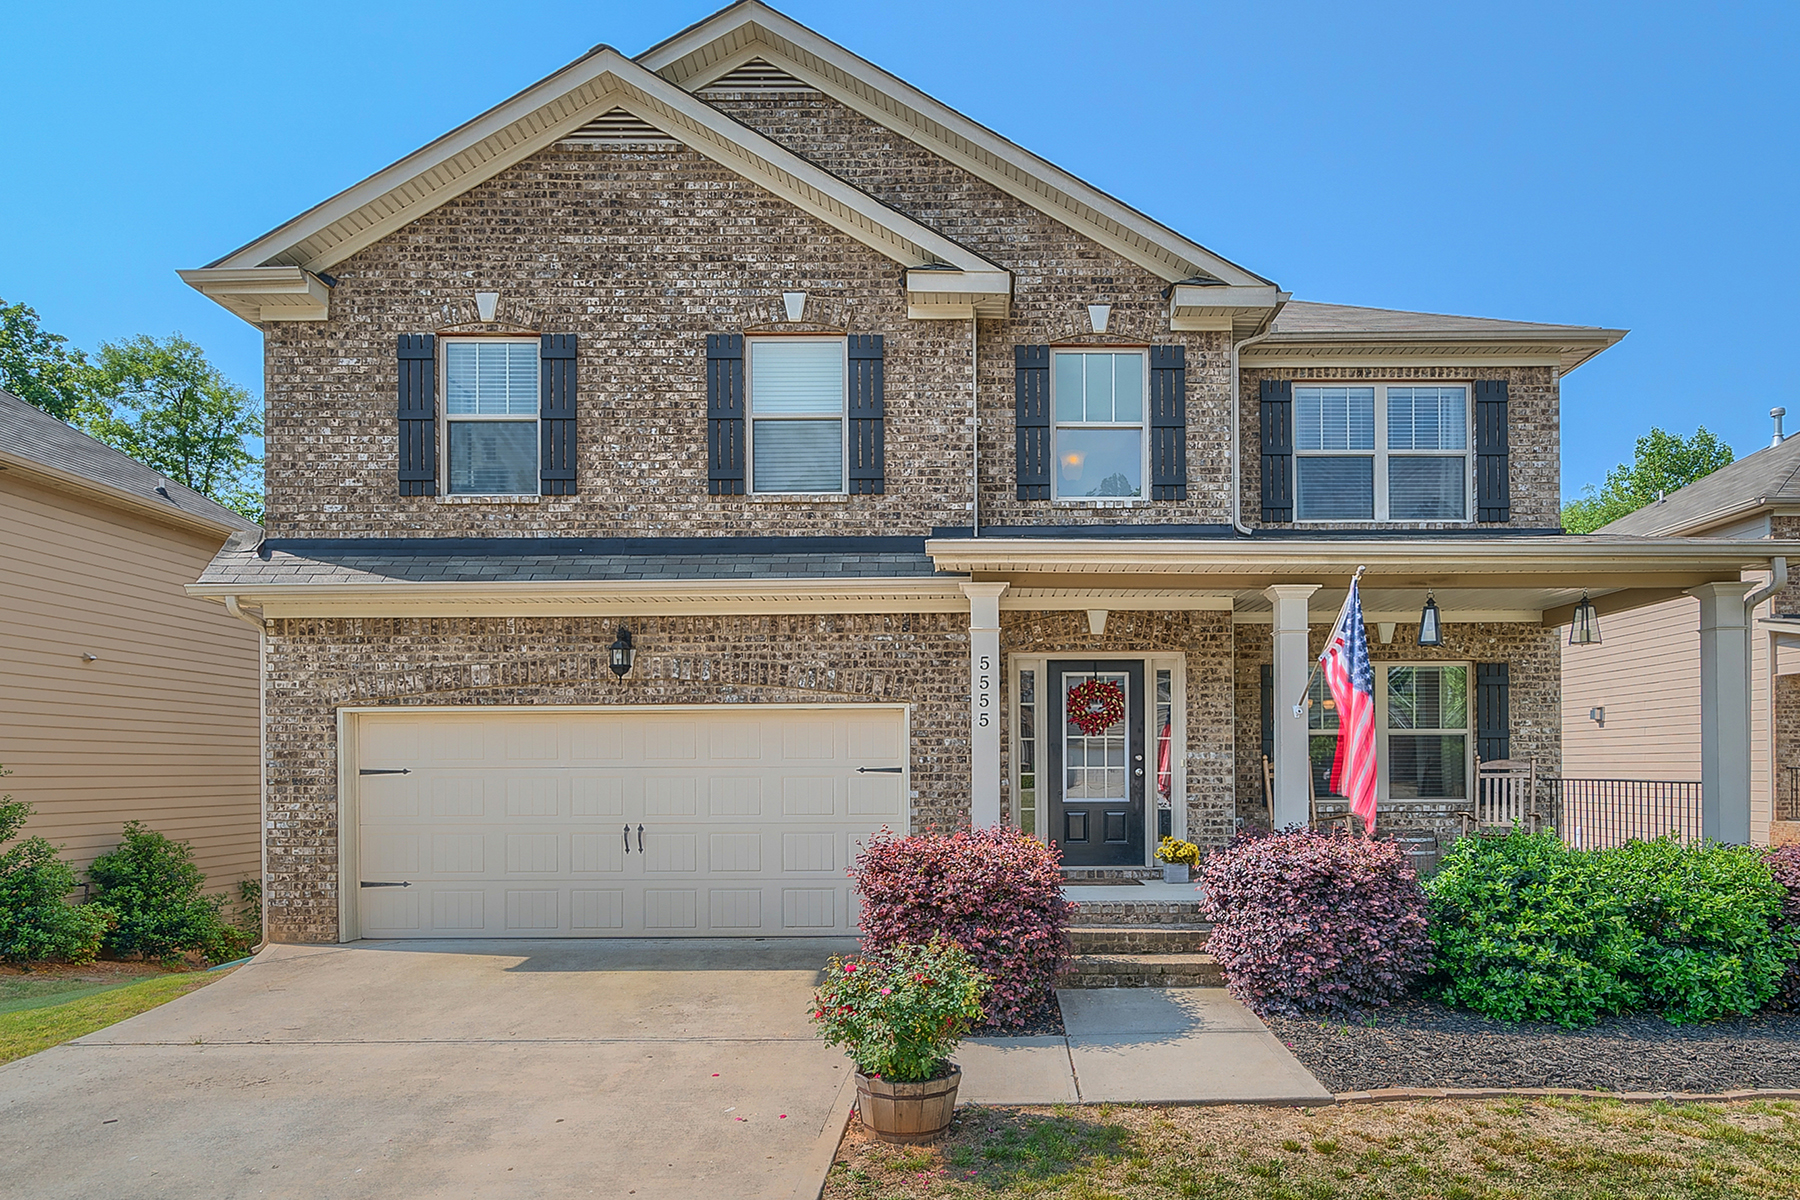 Single Family Home for Sale at Cumming Charmer 5555 Orchard Hill Terr Cumming, Georgia 30028 United States